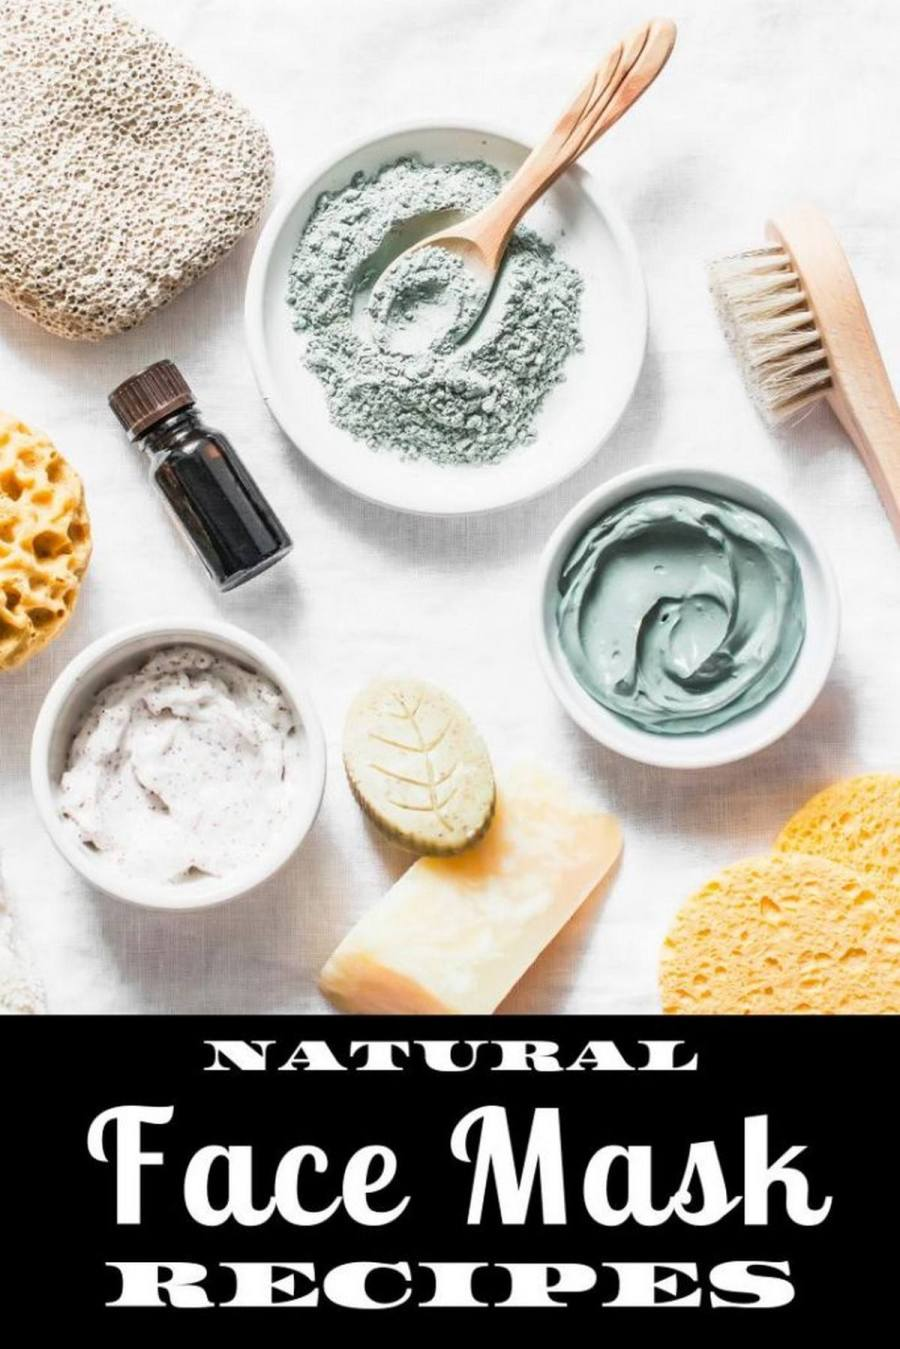 So, when you want to give your skin some TLC, but can't bring yourself to leave the vicinity of your kitchen, try these mask recipes that come courtesy of three food- and skincare experts. It's almost annoying how freaking brilliant these are.